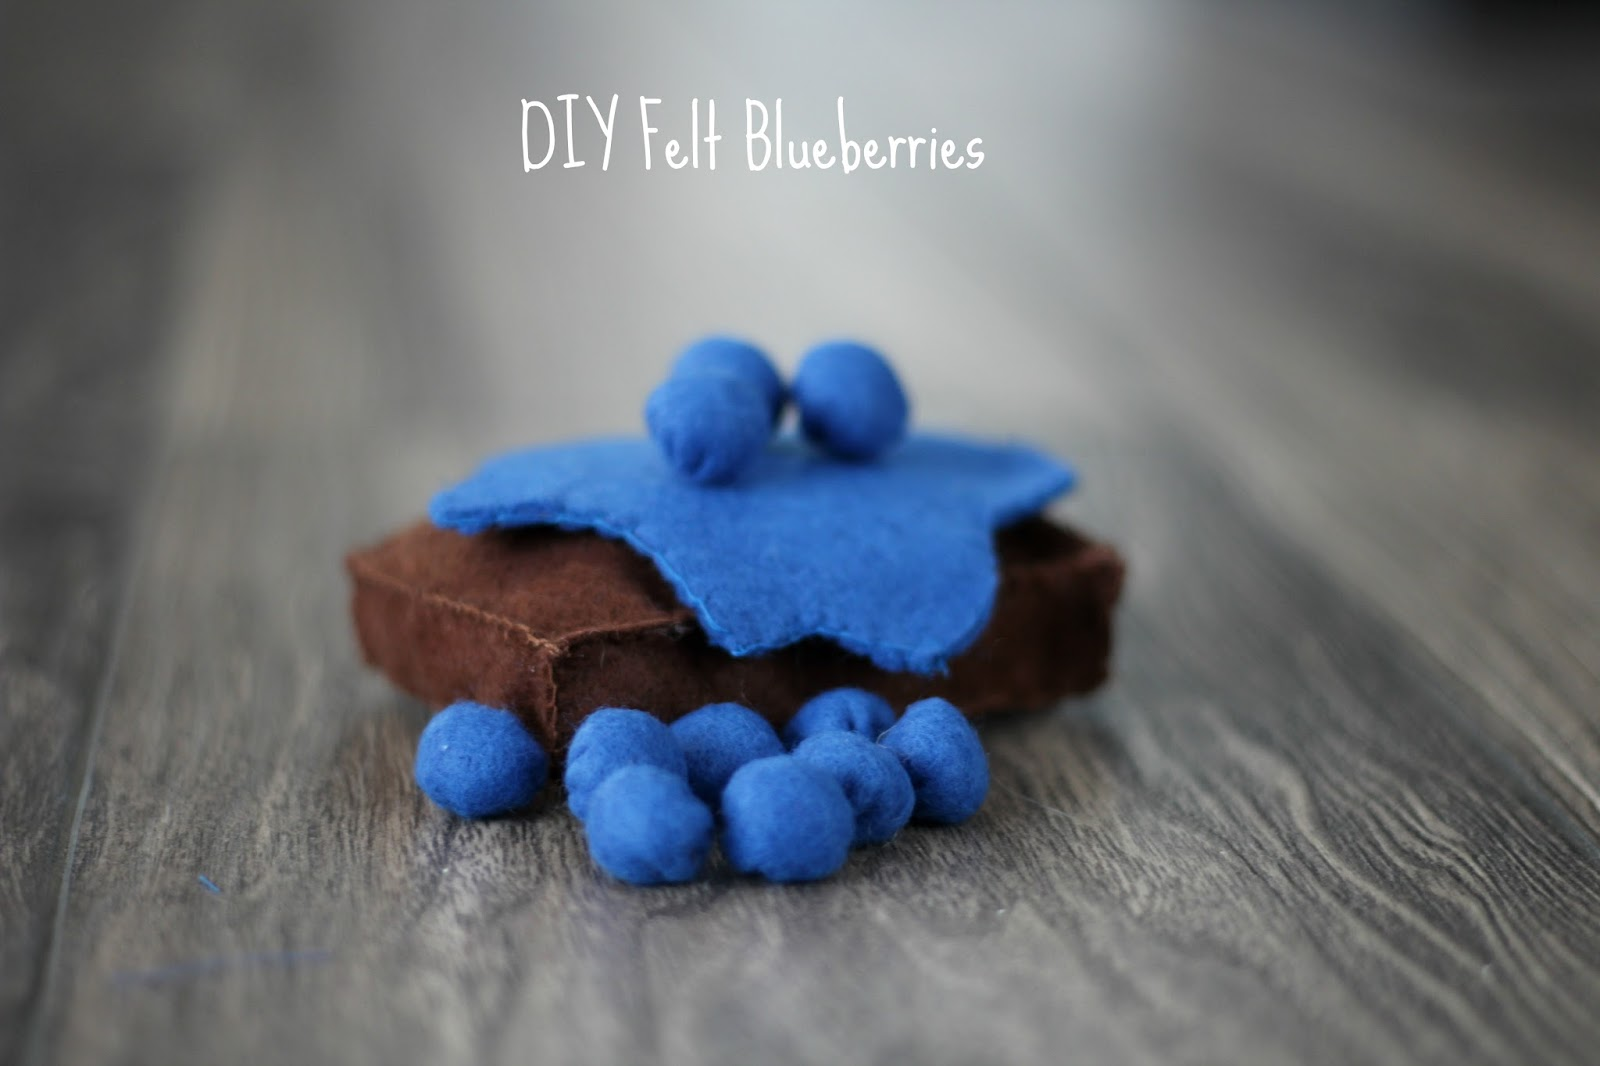 diy felt blueberries